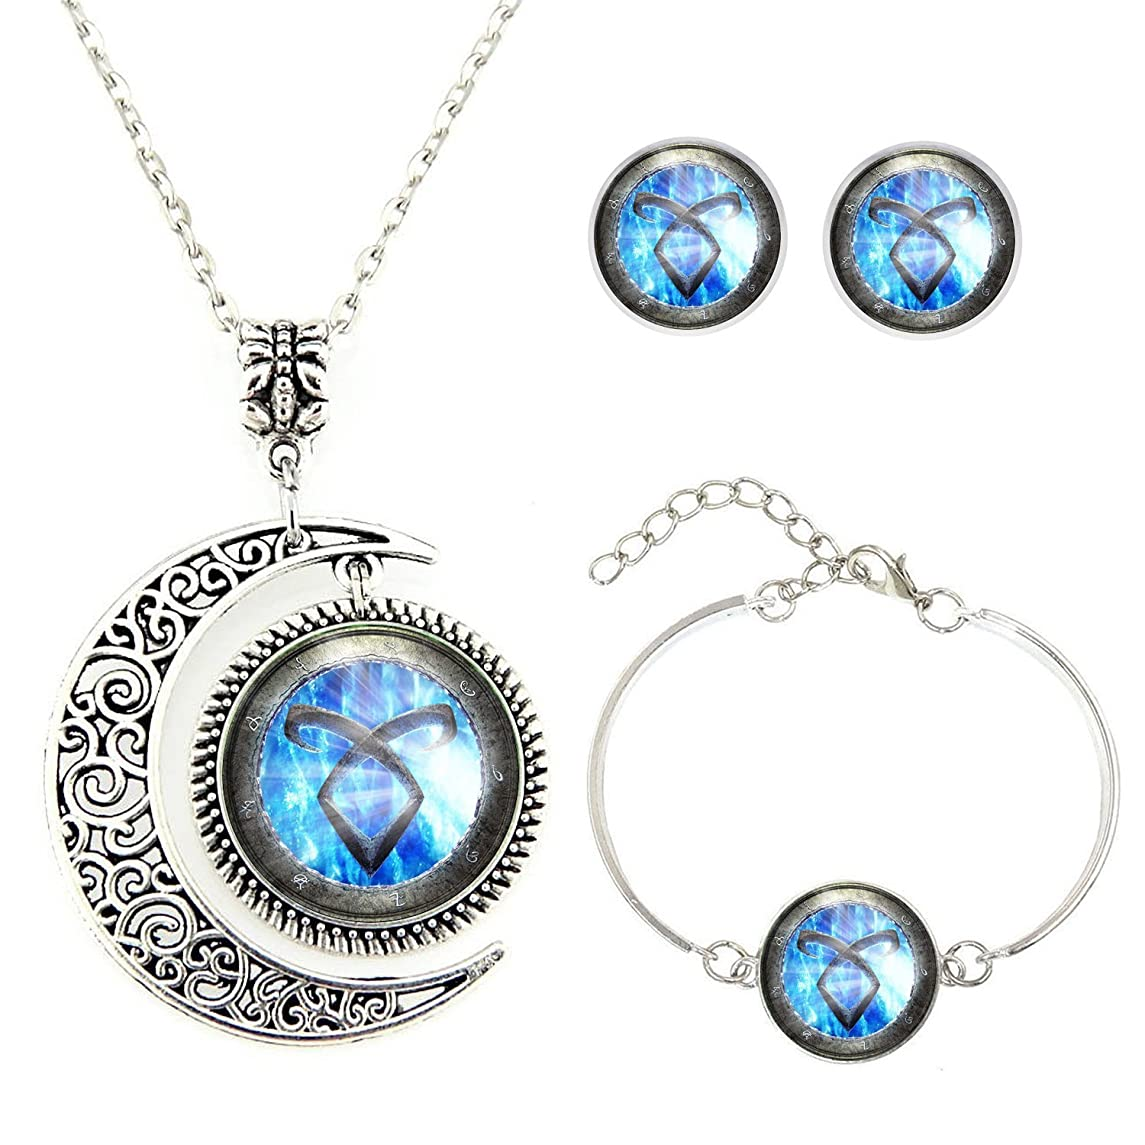 Moon Pendant Shadowhunters Angelic Power Rune Necklace Shadowhunters Jewelry Set Fashion Moon Necklace Gift